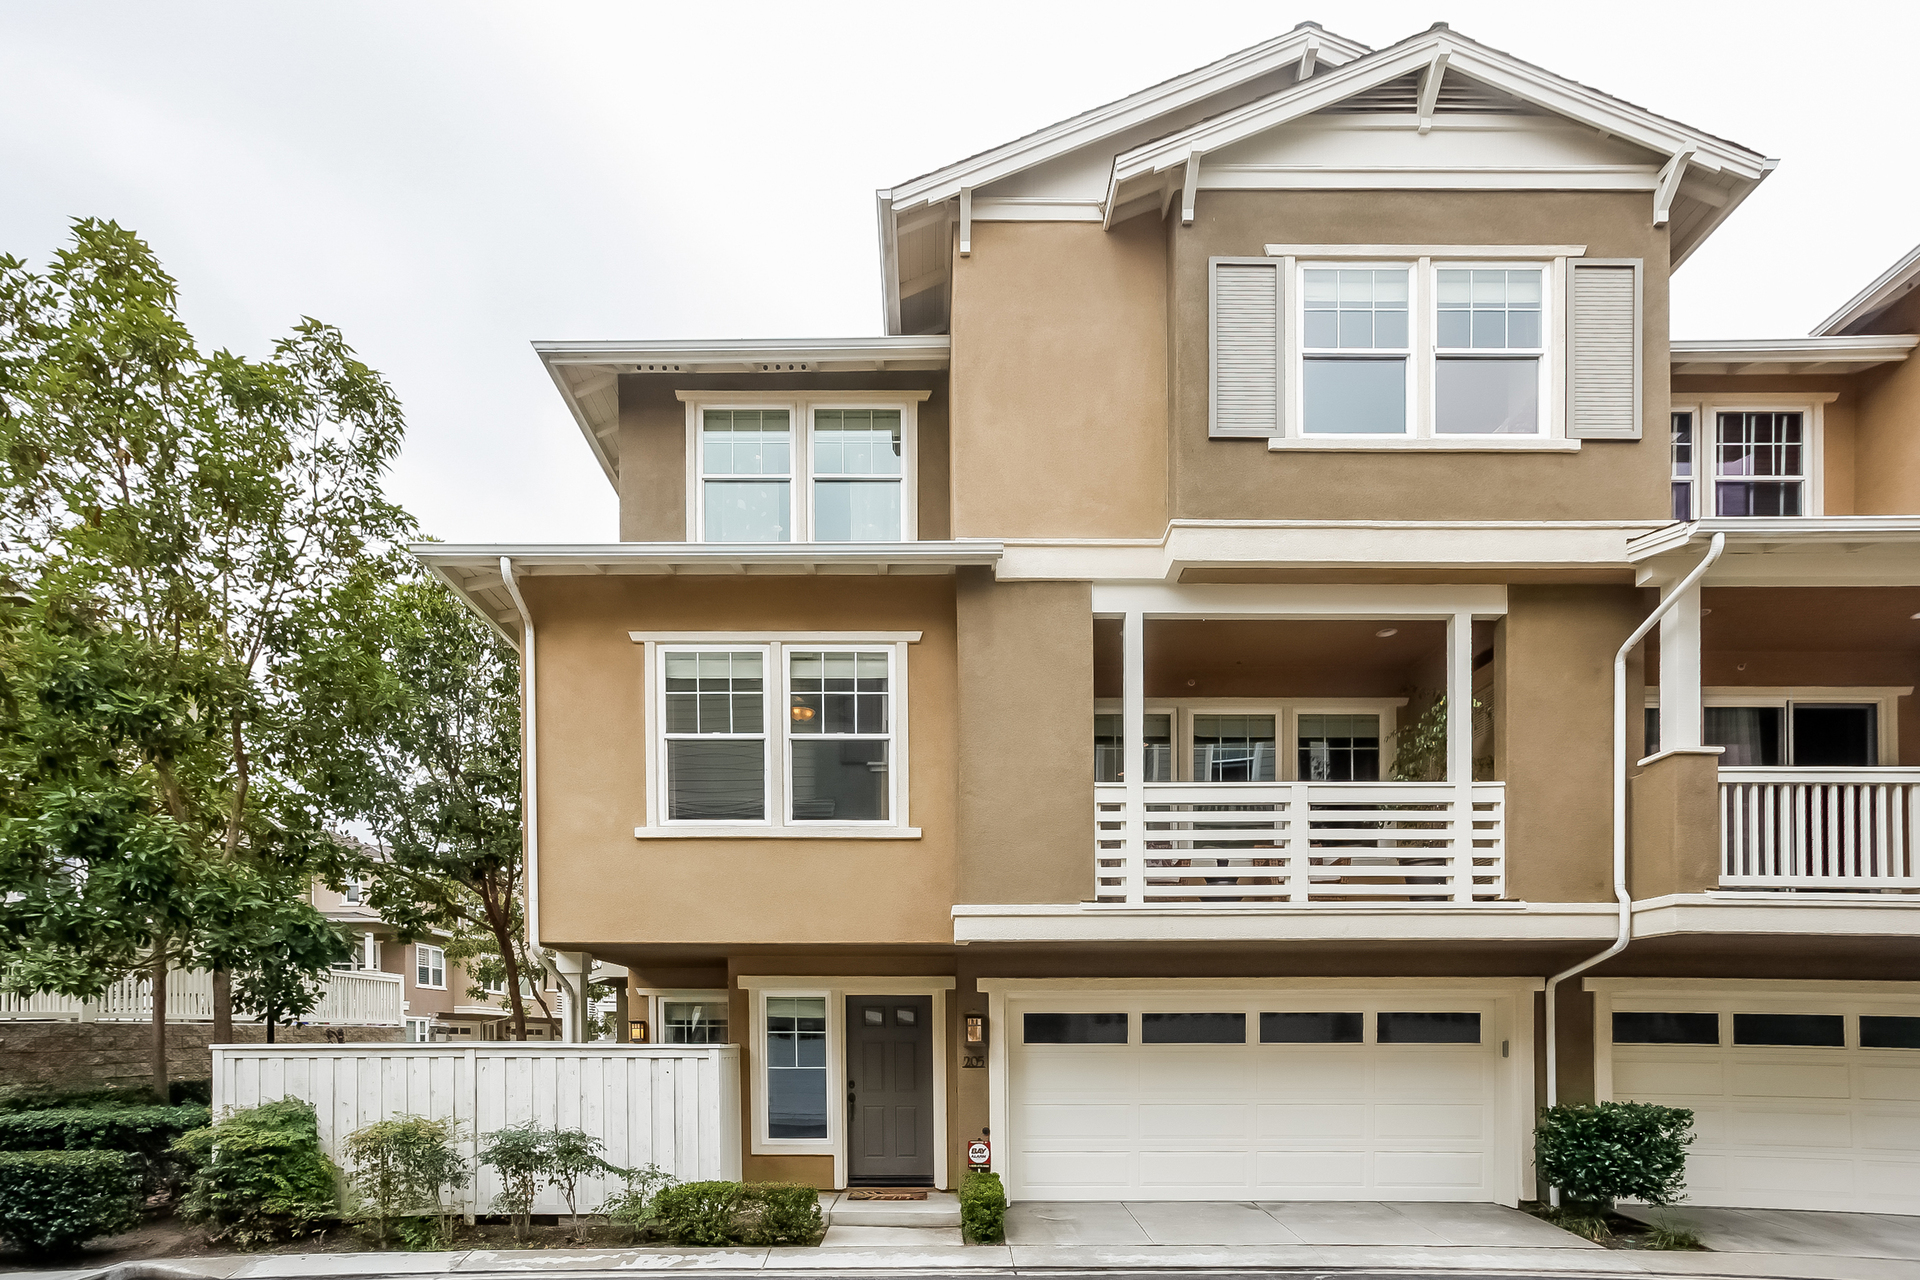 Townhouse for Sale at 1800 Oak St. #205 Torrance, California, 90501 United States